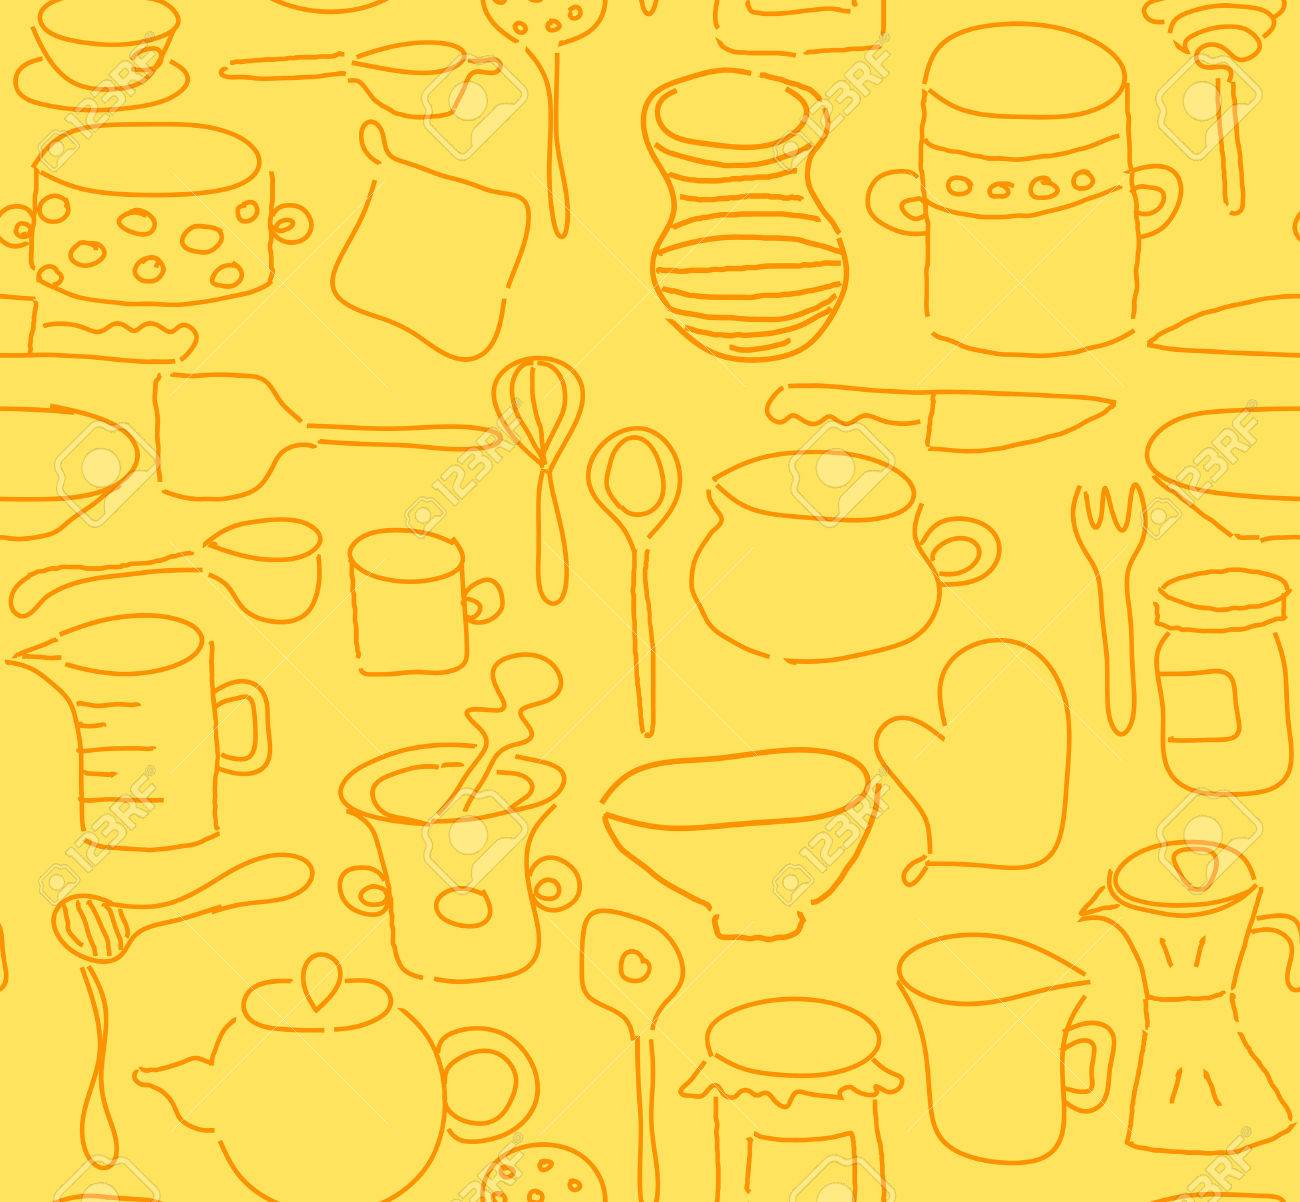 Kitchen Utensils Wallpaper seamless kitchen utensils doodle royalty free cliparts, vectors